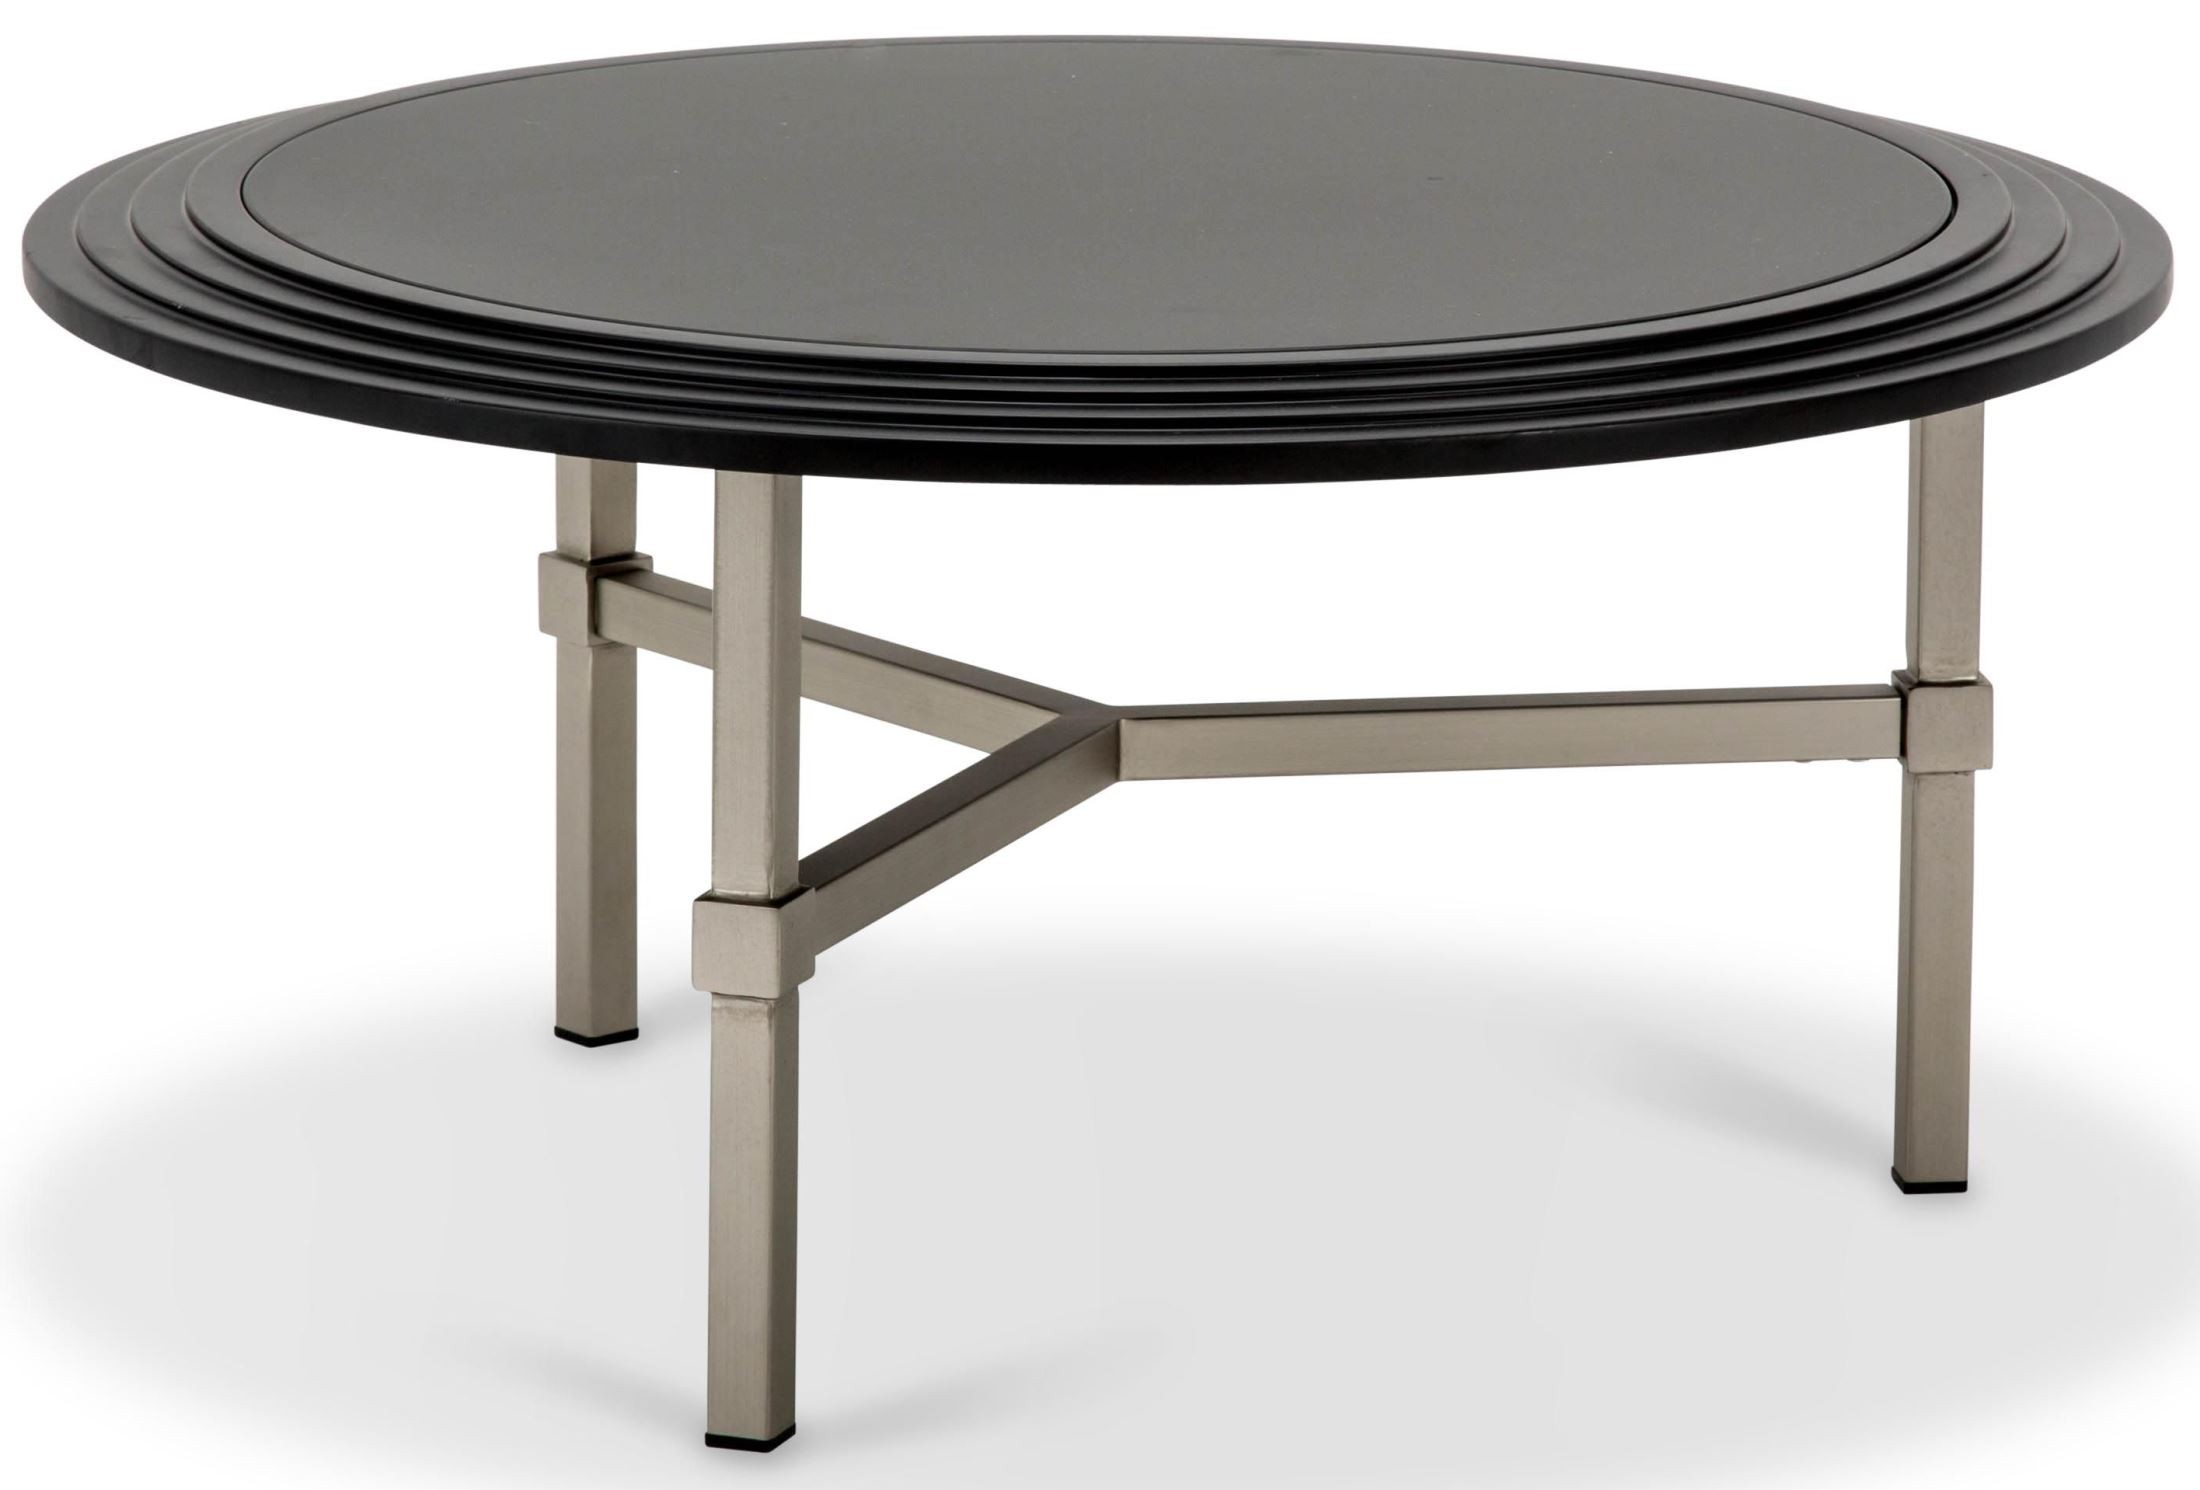 Trance vortex black round cocktail table tr vortx204b aico for Table th ou tr